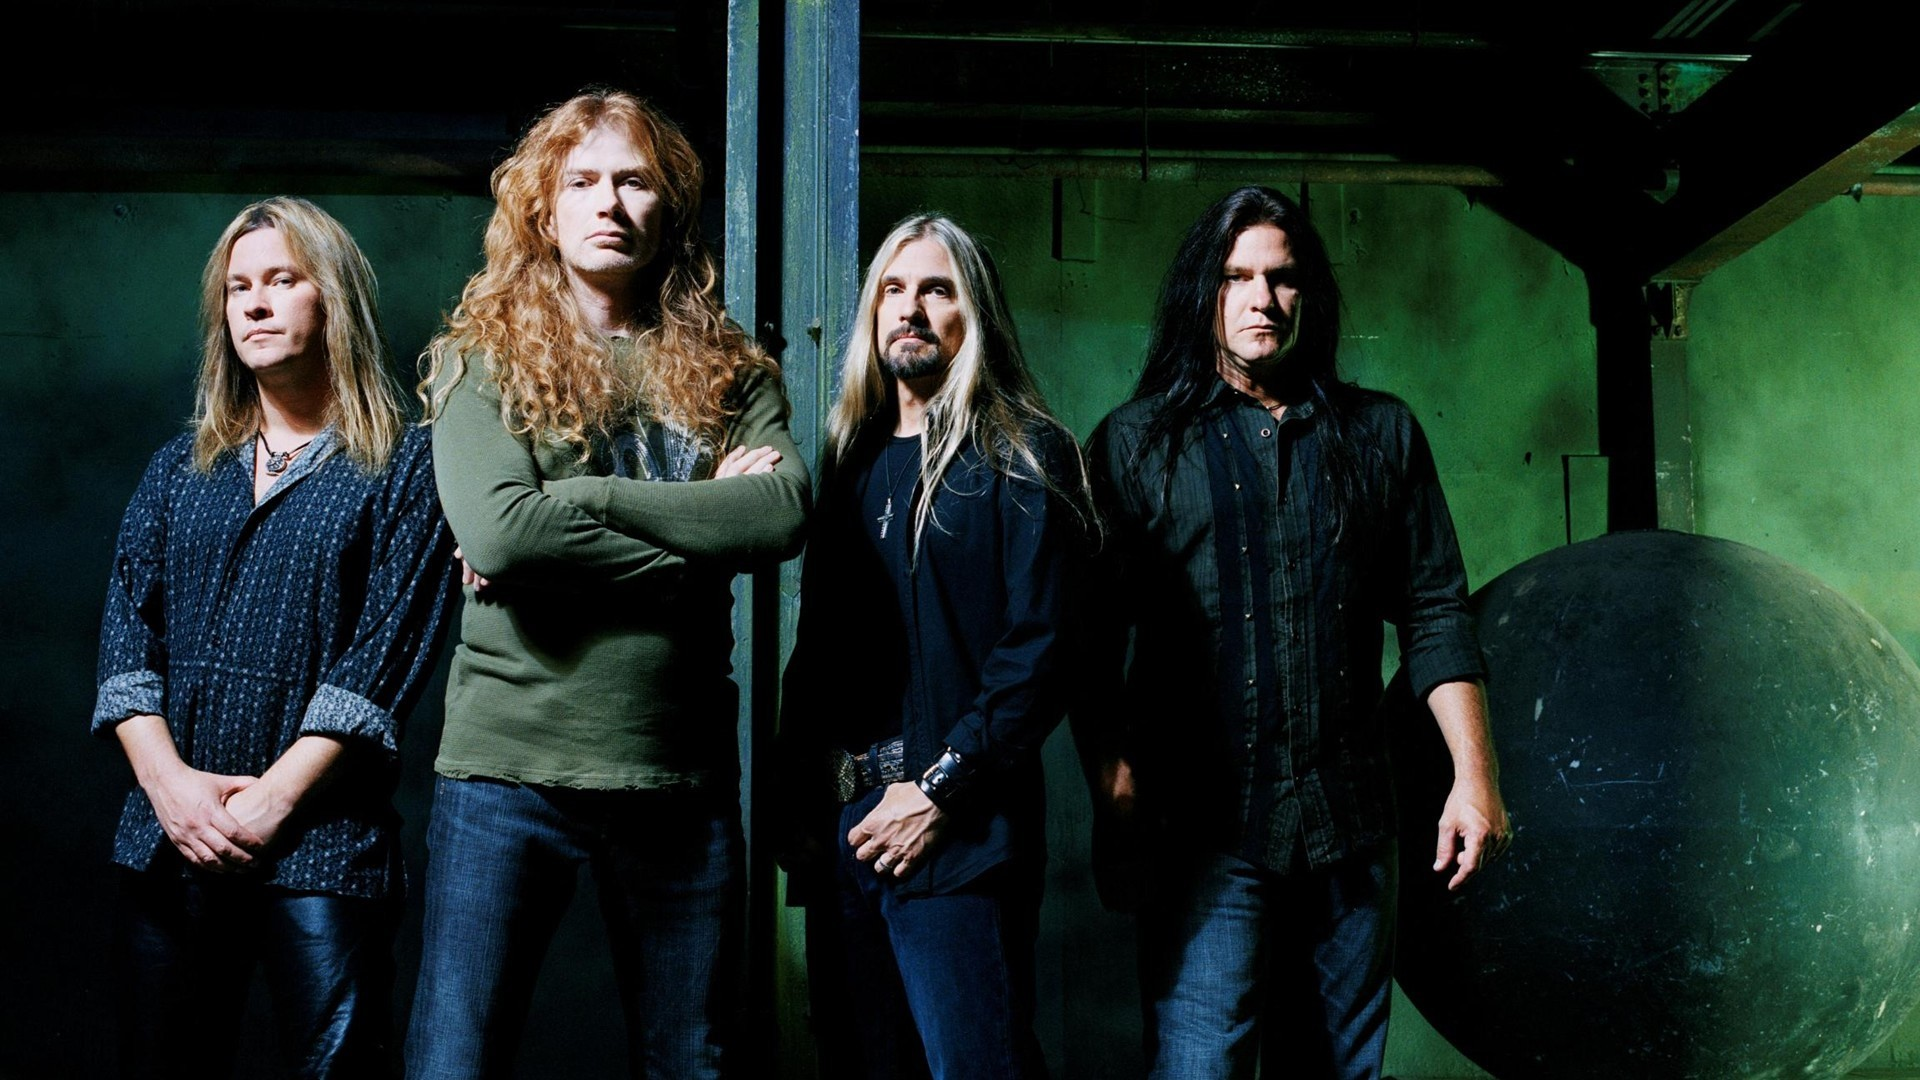 Res: 1920x1080, Shawn Drover Megadeth David Ellefson Dave Mustaine Chris Broderick 1080p HD  Wallpaper Background